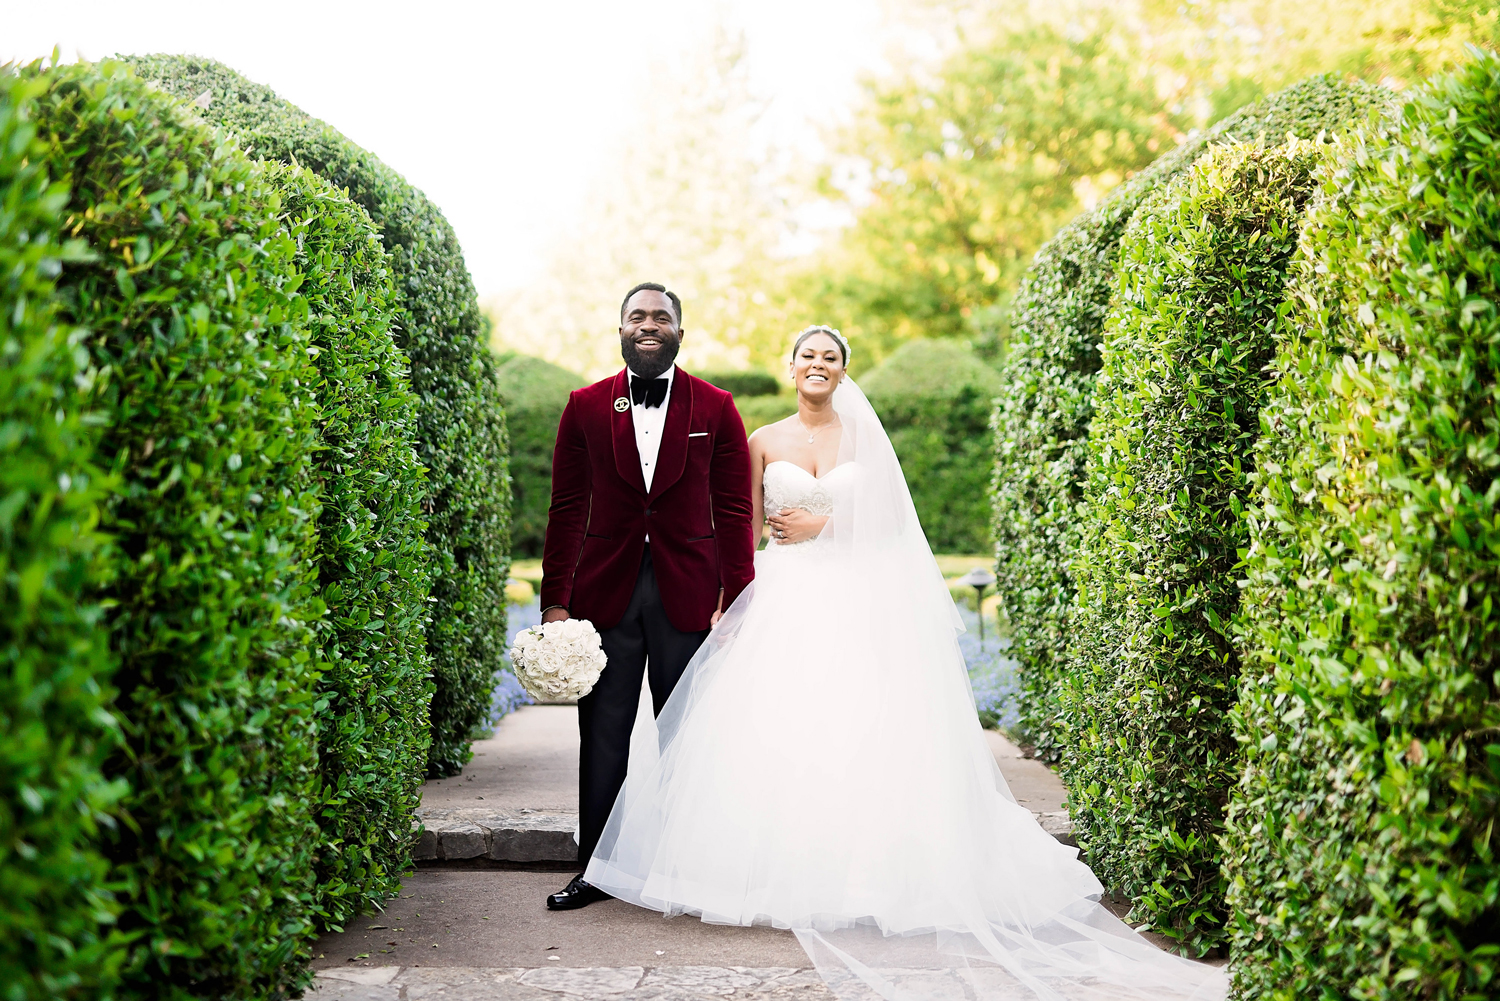 bride and groom pose for portrait between shrubs